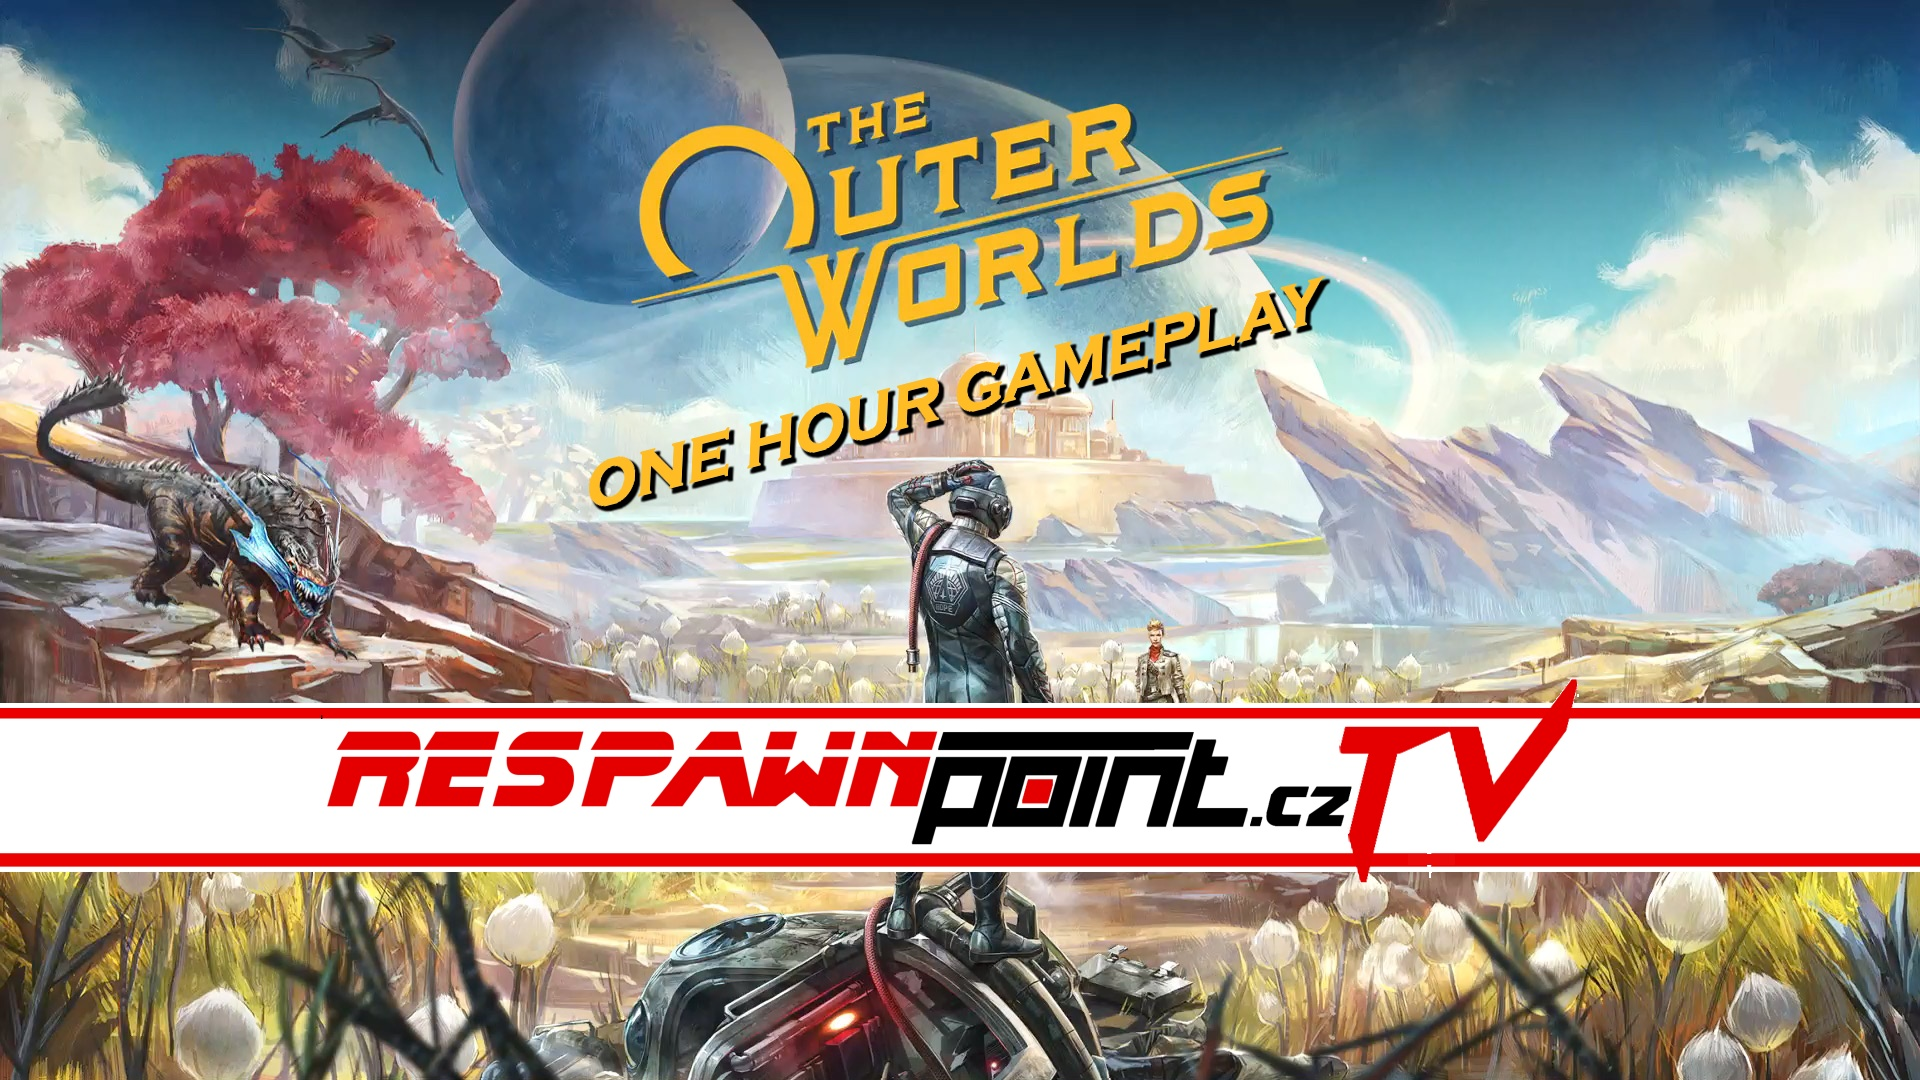 The Outer Worlds – One Hour Gameplay